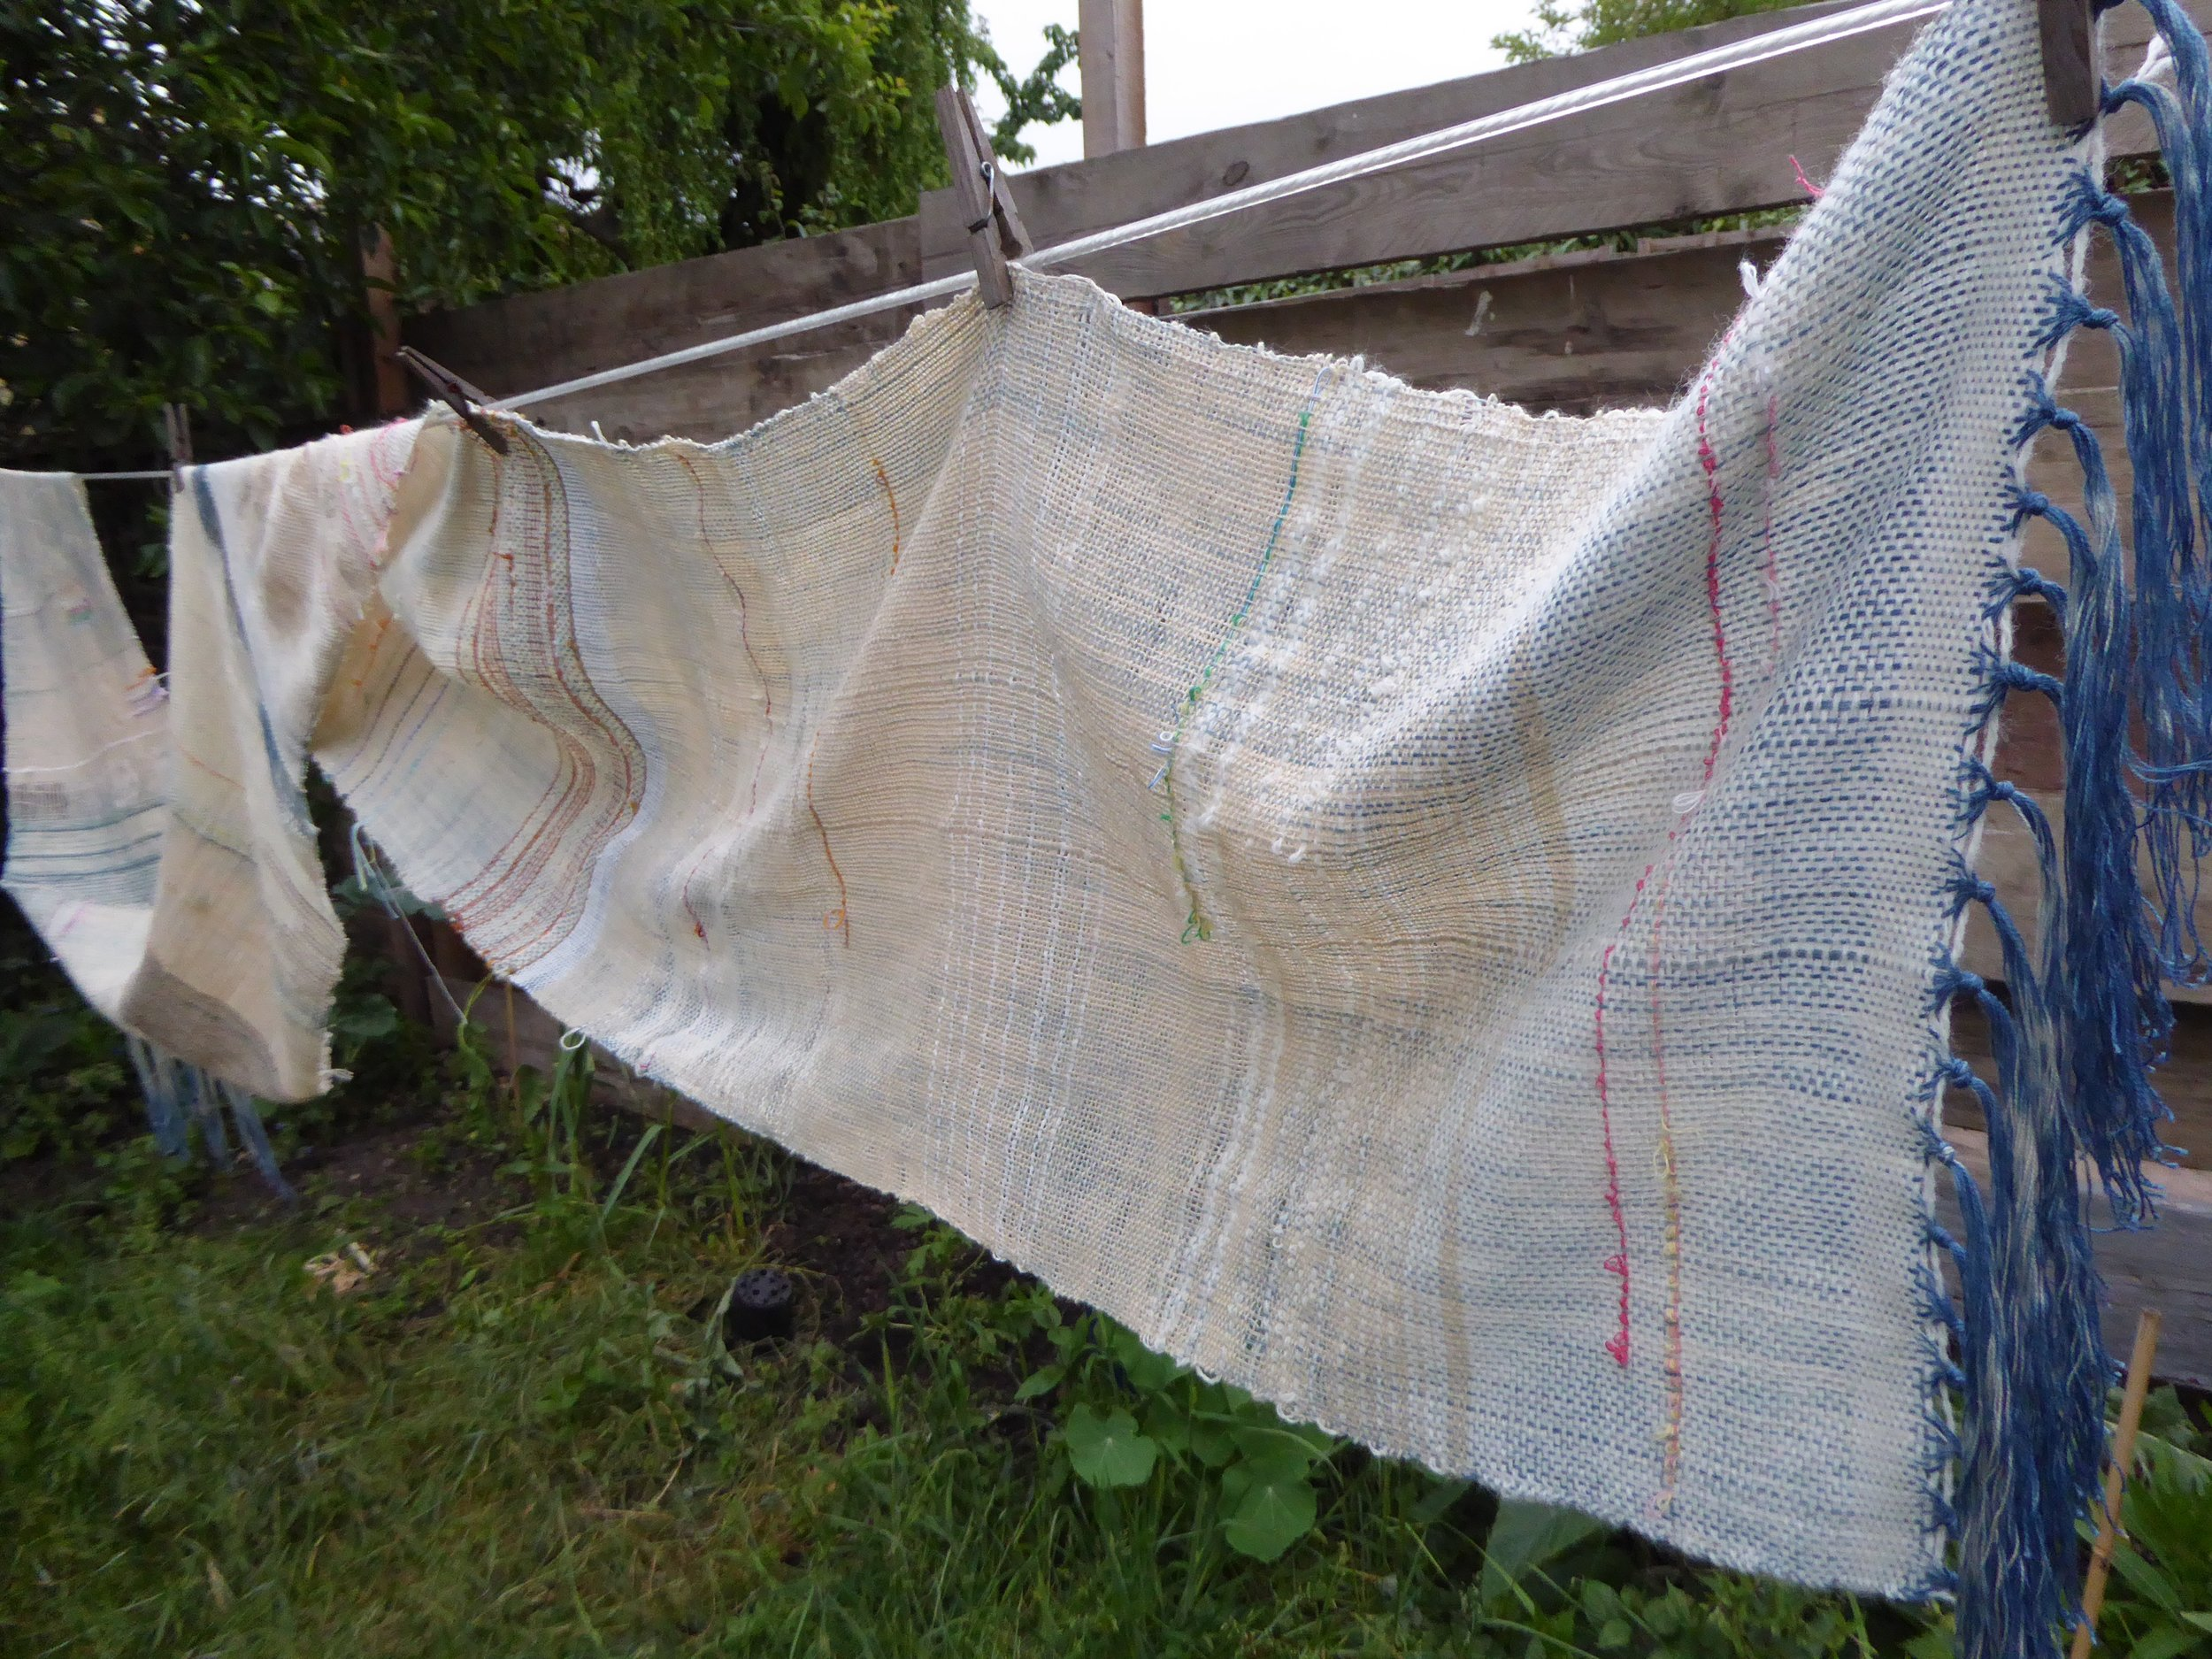 COT WEAVE, hand dyed indigo threads showing through